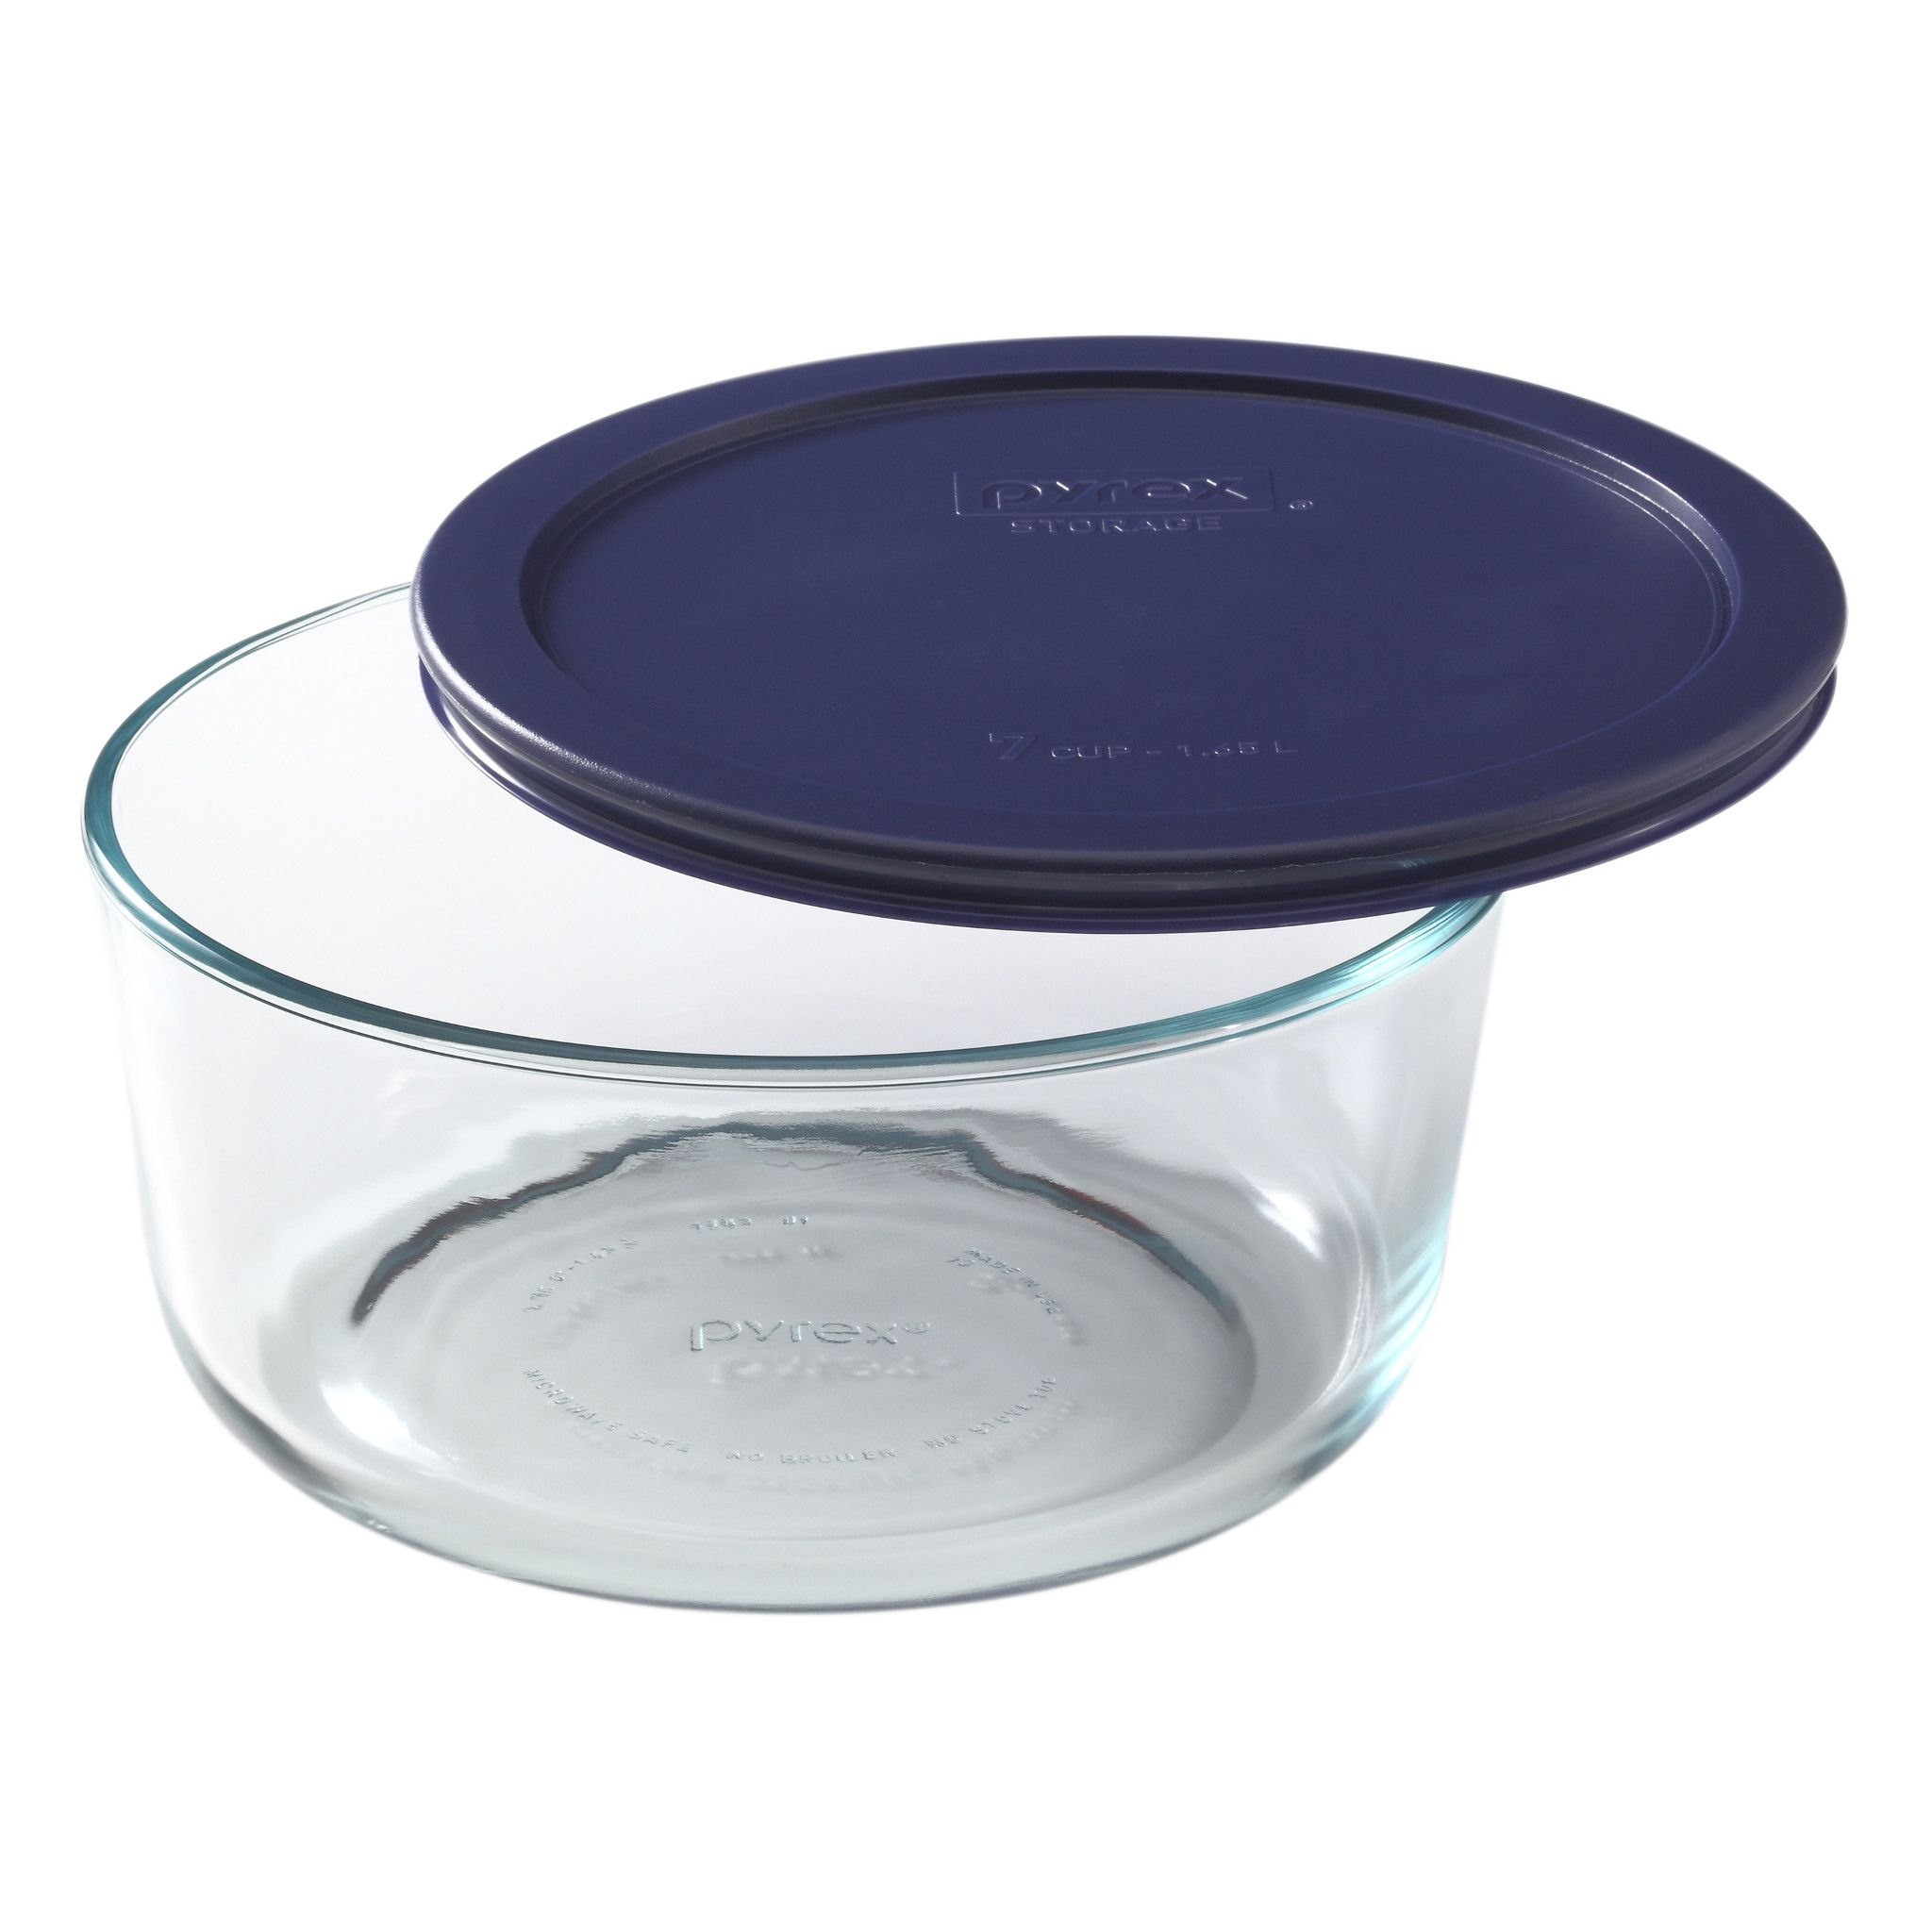 Pyrex Glass Storage with Lid 7 Cup, 1.0 CT